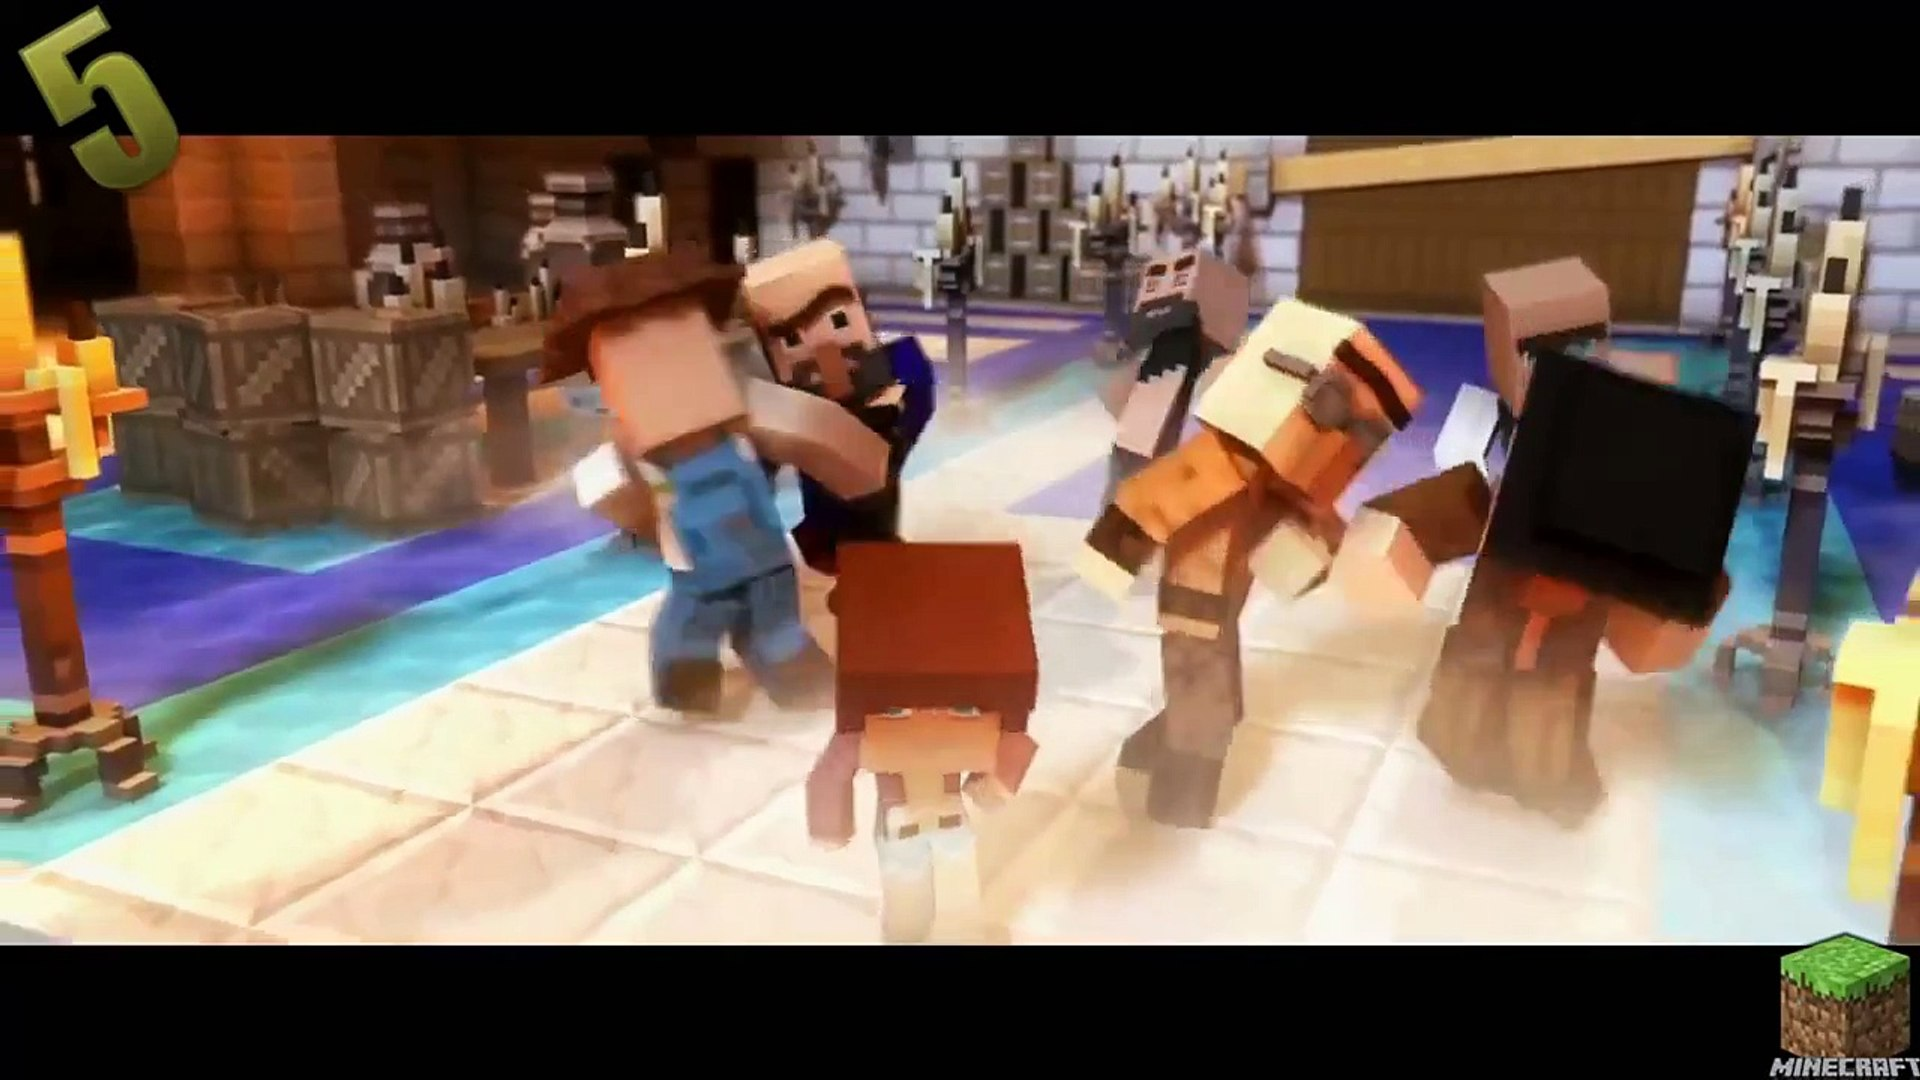 Top 5 Minecraft Song Parody Minecraft Songs Funny Animations Parodies(2015 2016 )